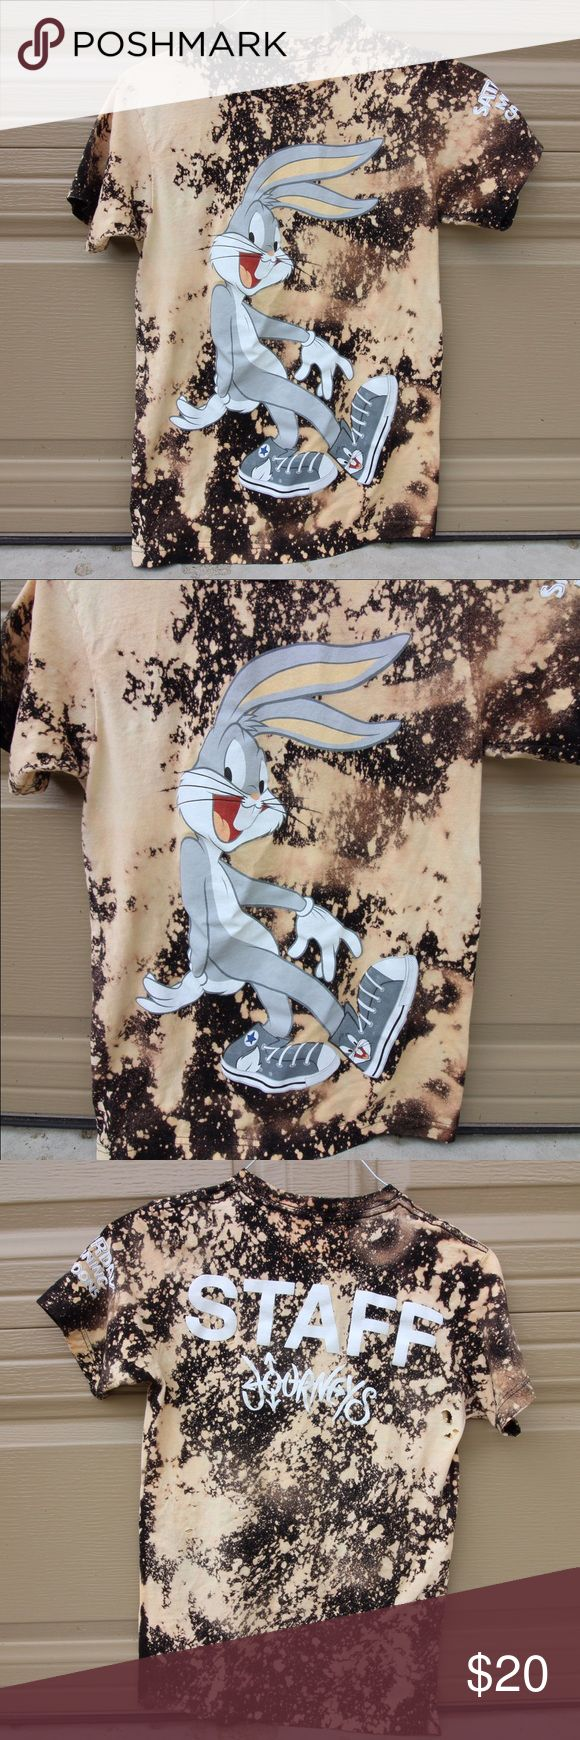 Bleach Dyed BUGS BUNNY CONVERSE shirt Bleach Dyed Bugs Bunny Converse t shirt. Was a staff shirt but many people wanted it. I bleach dyed it myself. Men's small! I wear a women's Small and I can fit it, it's just a bit big hehe Converse Tops Tees - Short Sleeve